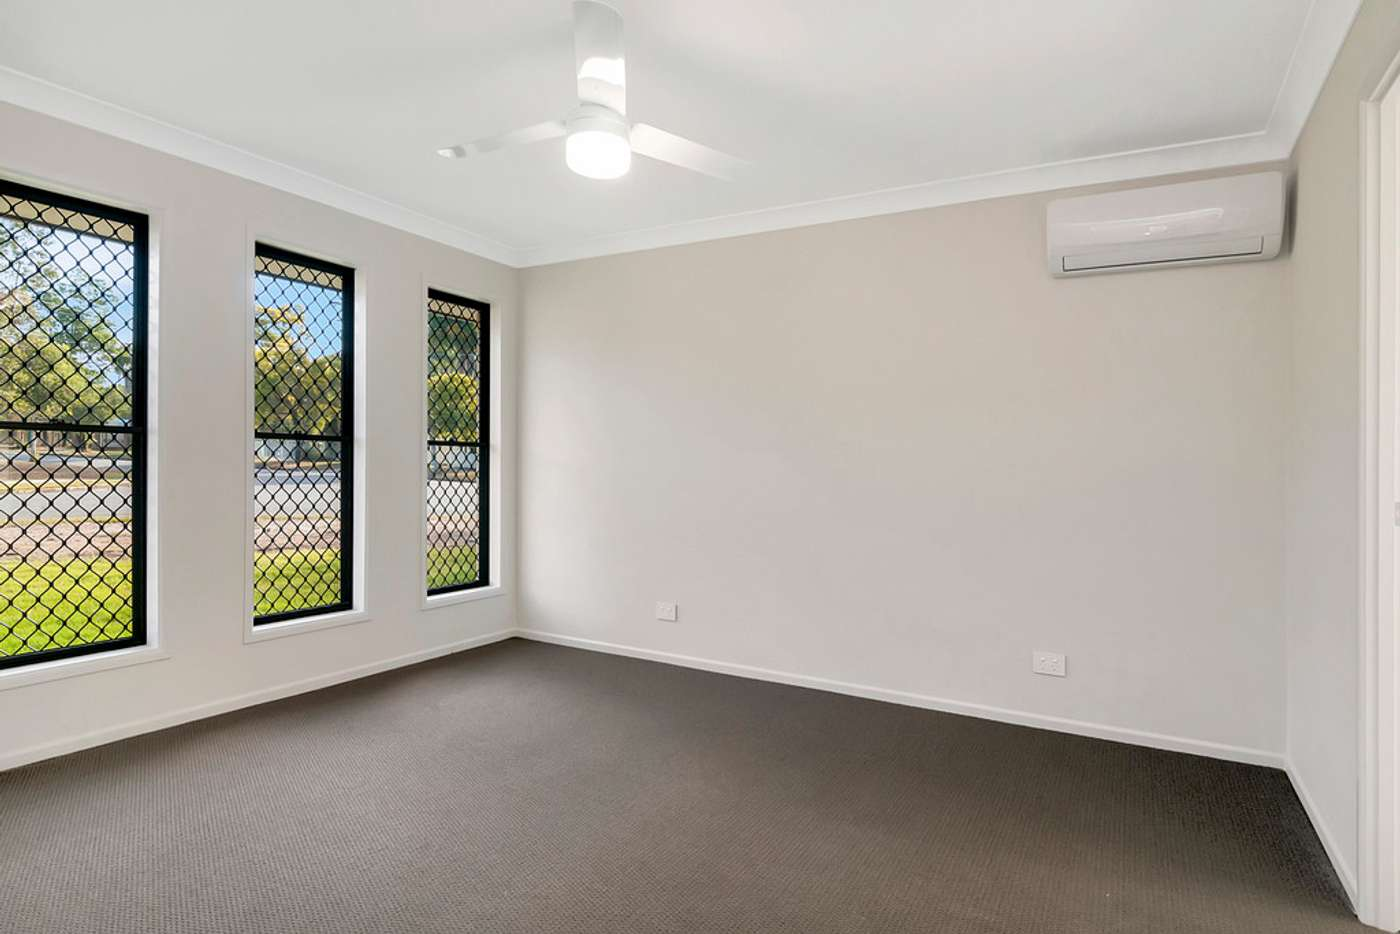 Sixth view of Homely house listing, 21 Redwood Street, Marsden QLD 4132